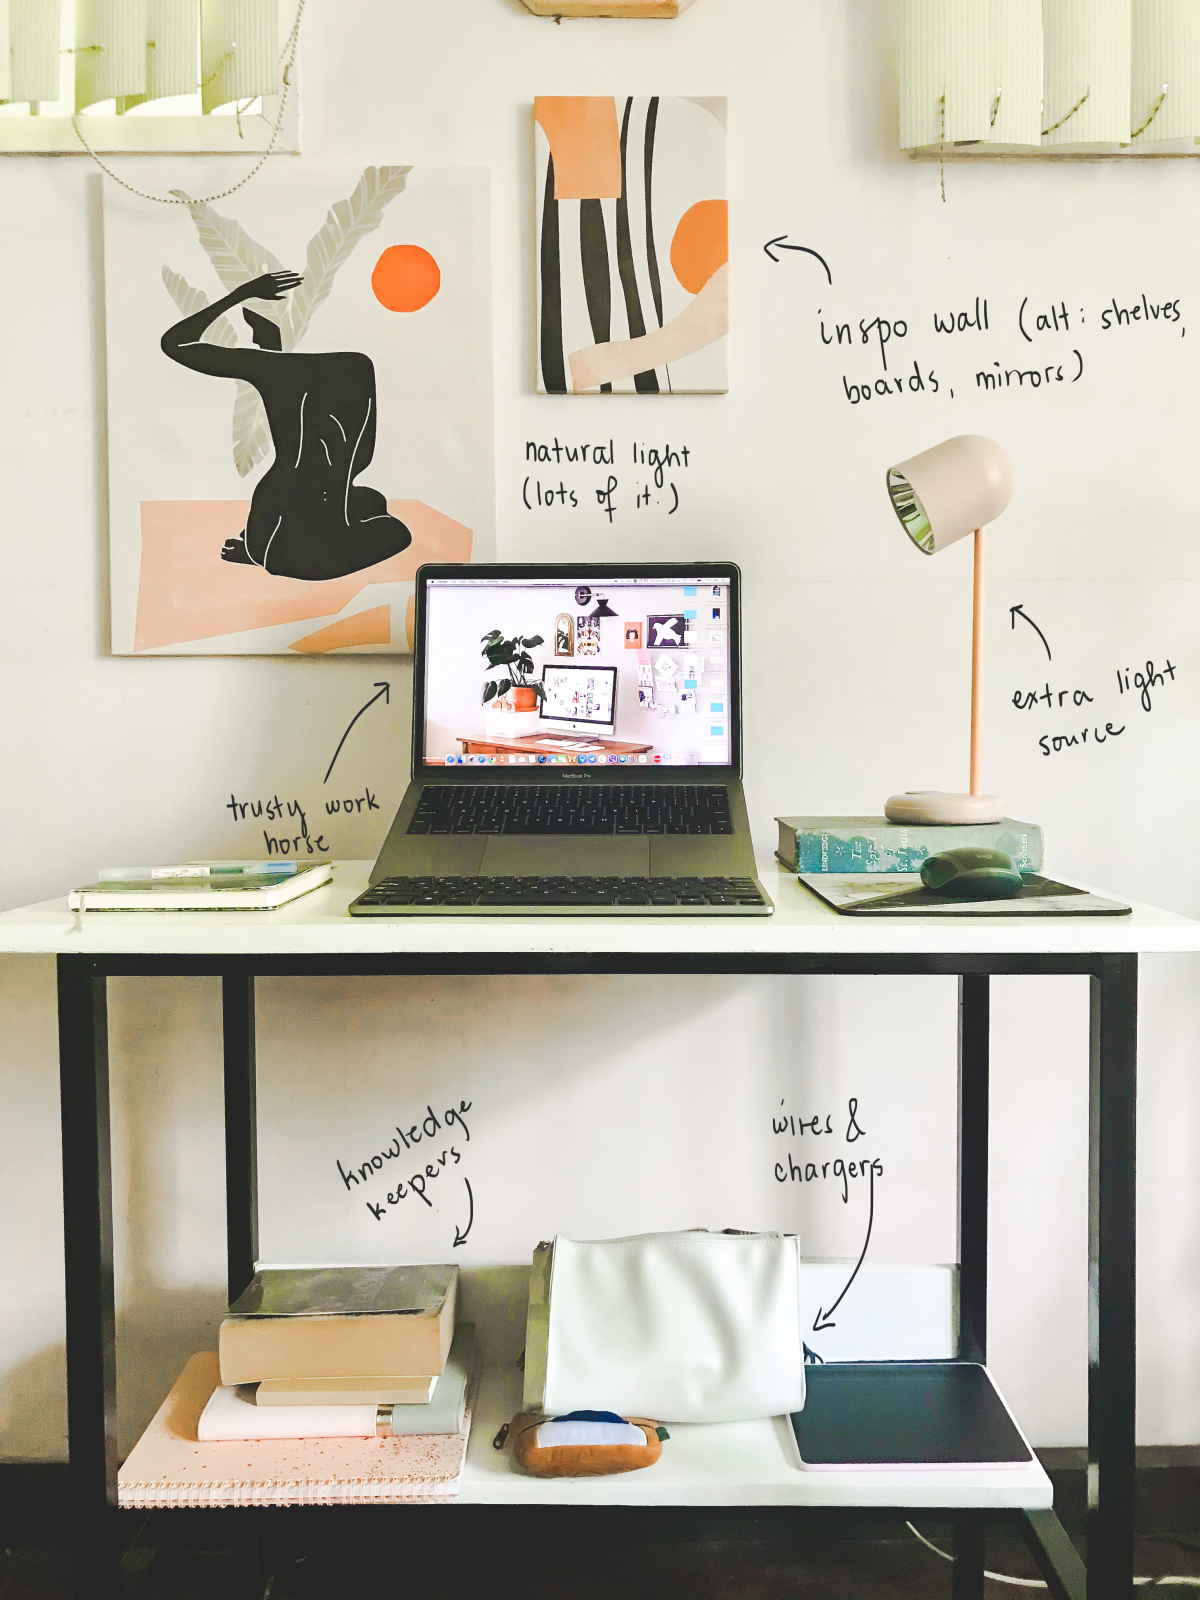 All the essentials for a productive home office. You can be more productive if you set up your workspace right, especially if you work from home.